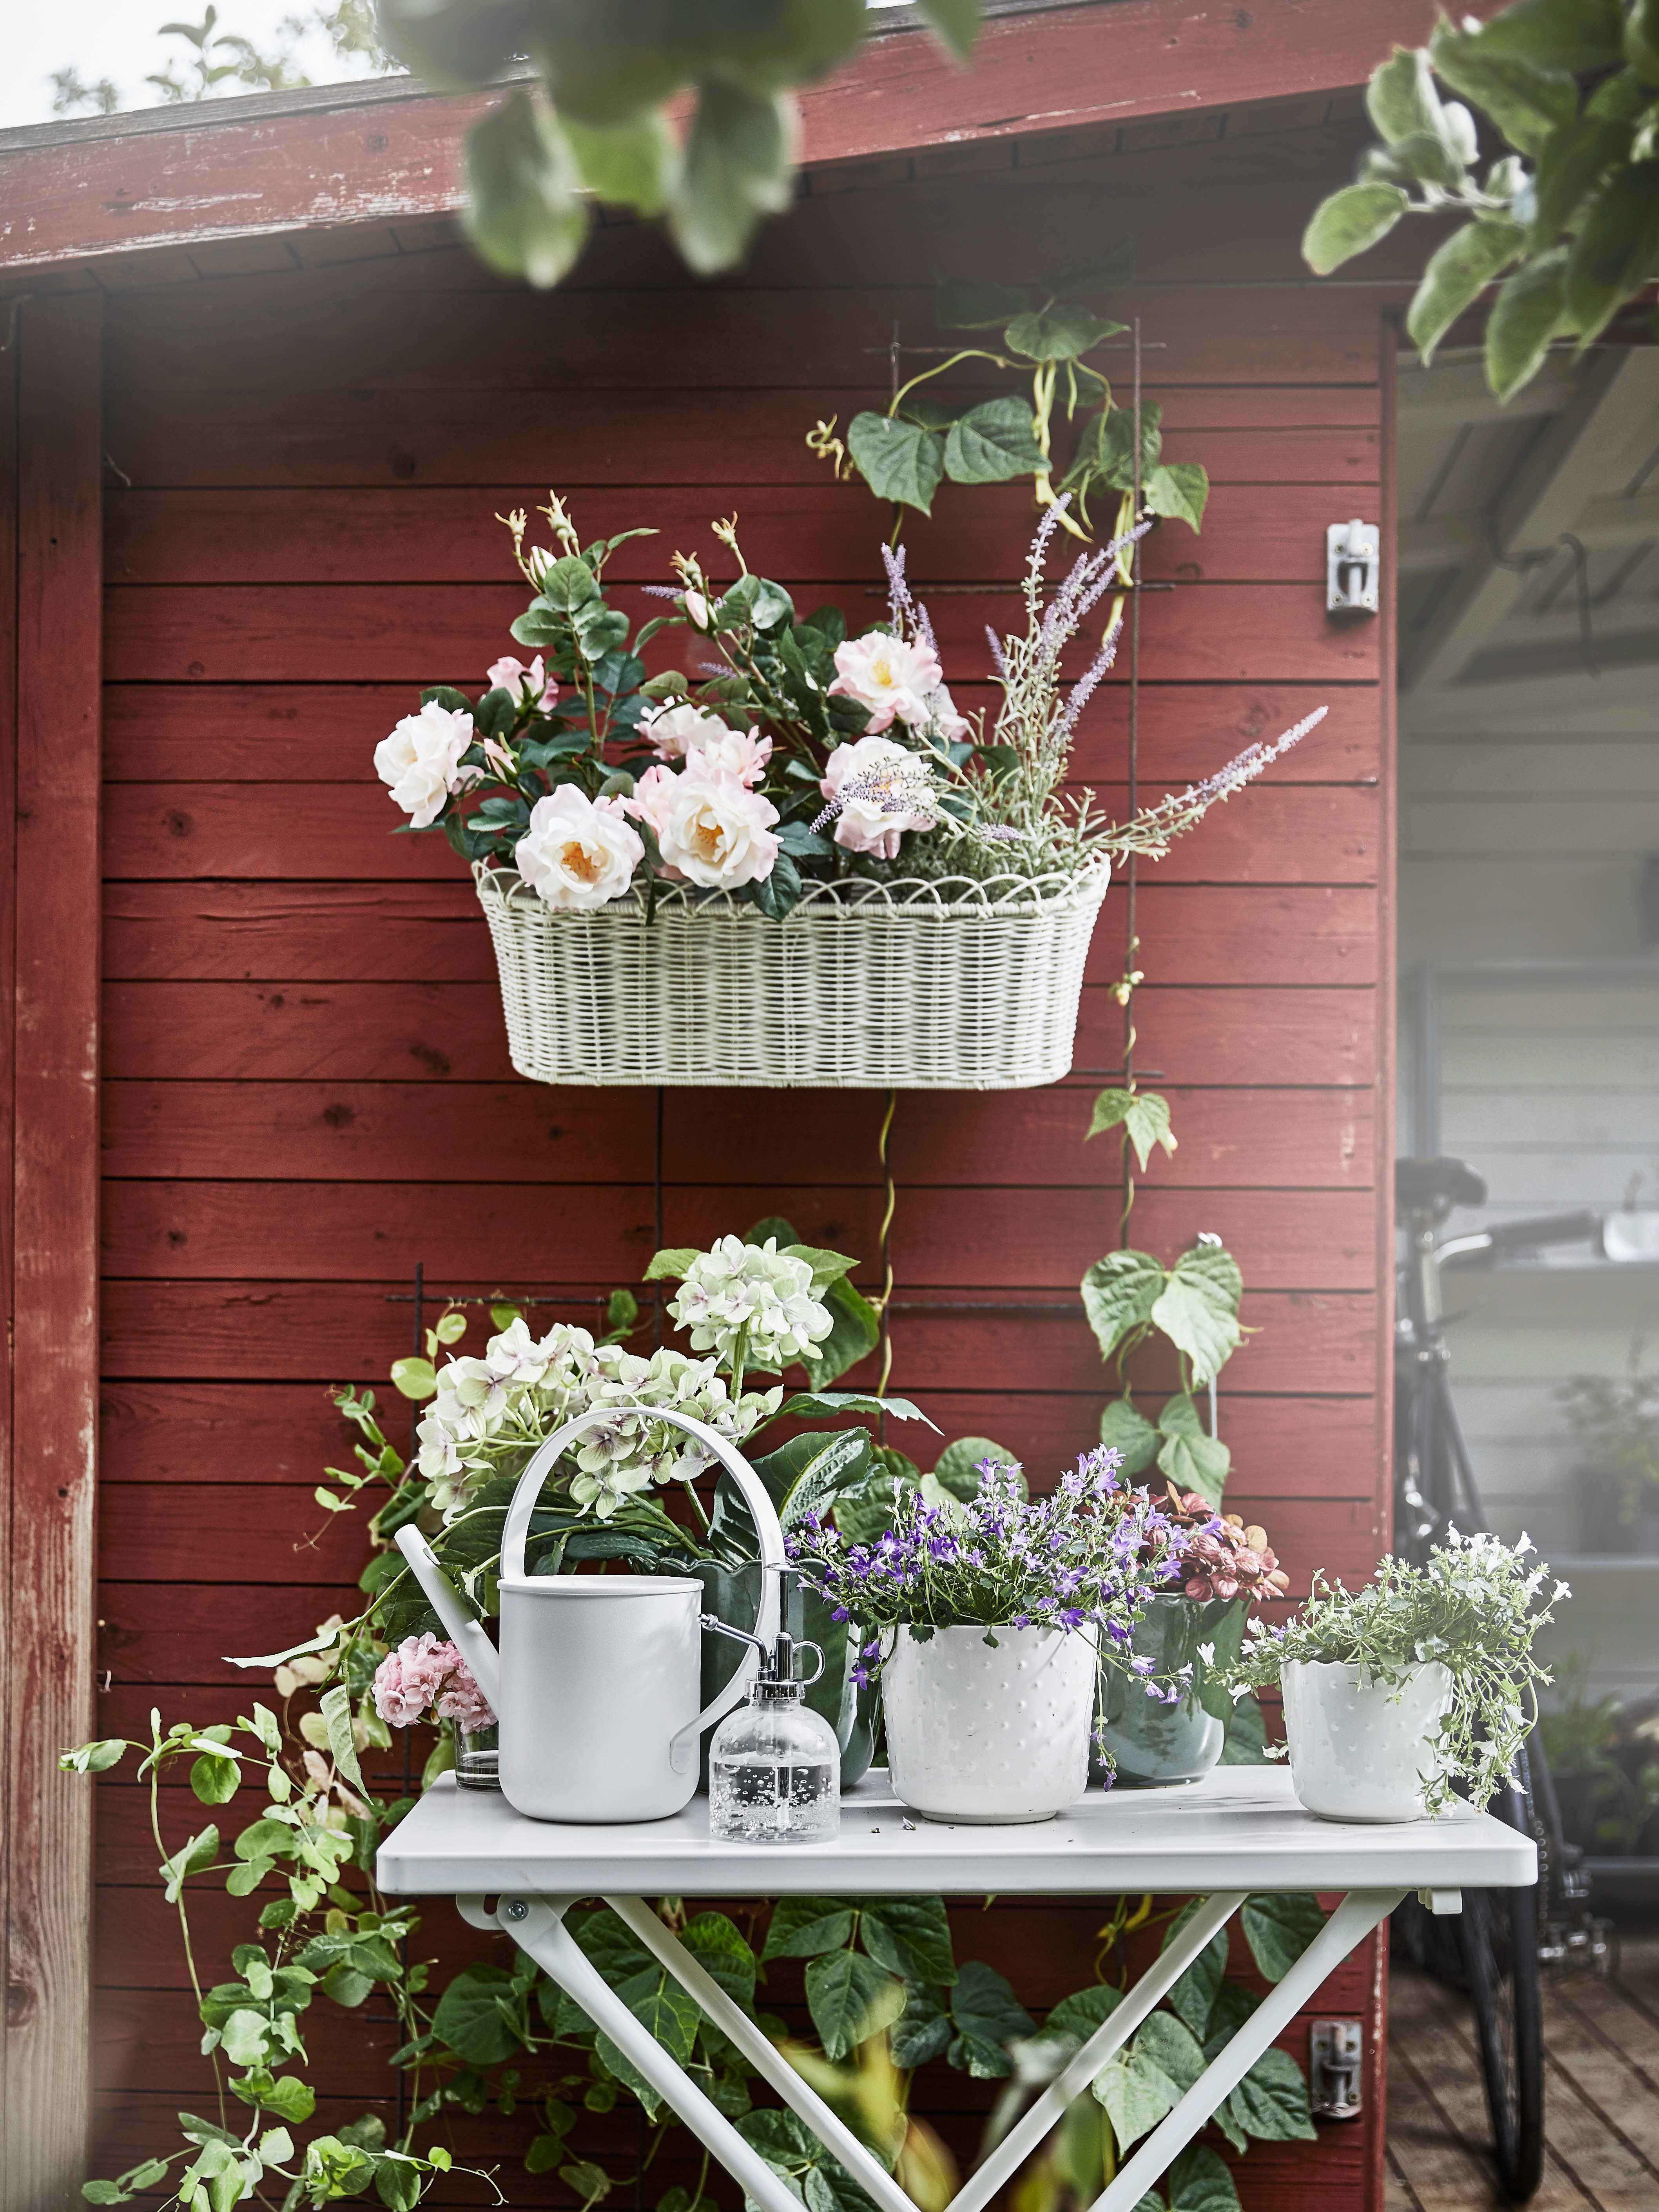 Outdoor area with a flower box on a shed's wall, white watering can, mist dispenser, plant pots, household plants and flowers